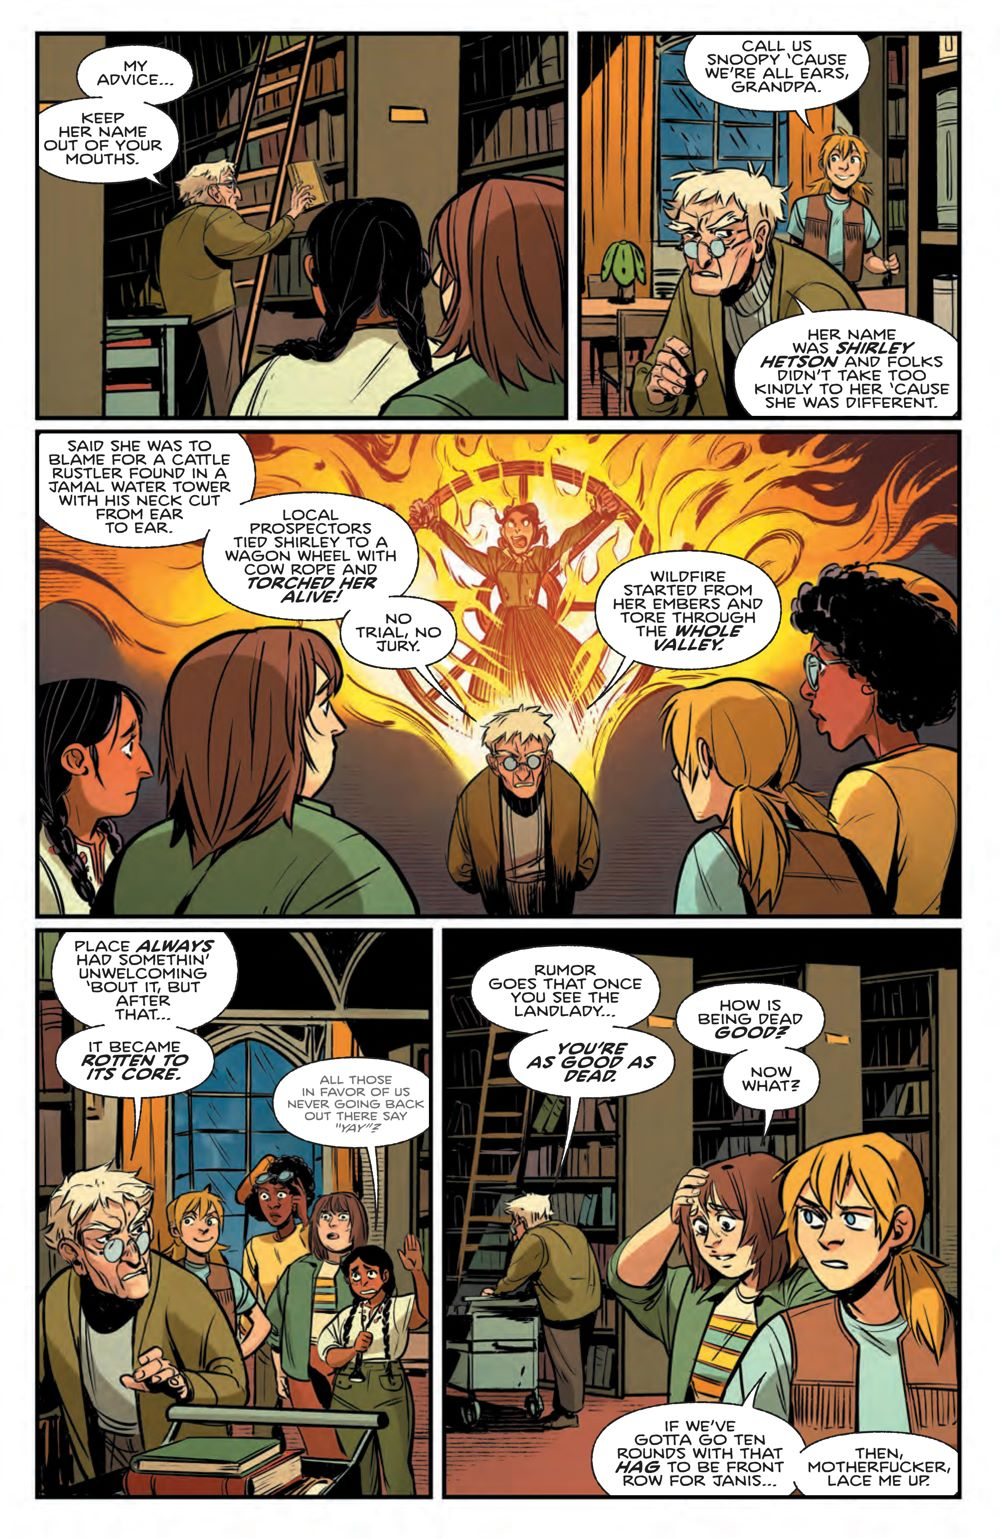 ProctorValleyRoad_003_PRESS_6 ComicList Previews: PROCTOR VALLEY ROAD #3 (OF 5)